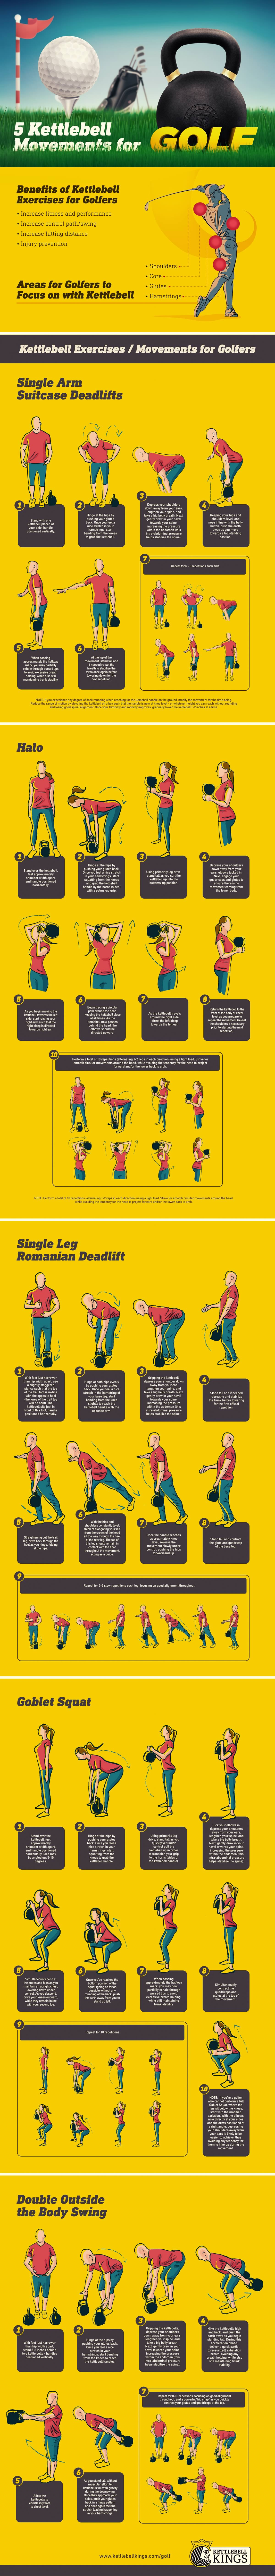 5 Kettlebell Movements for Golfers